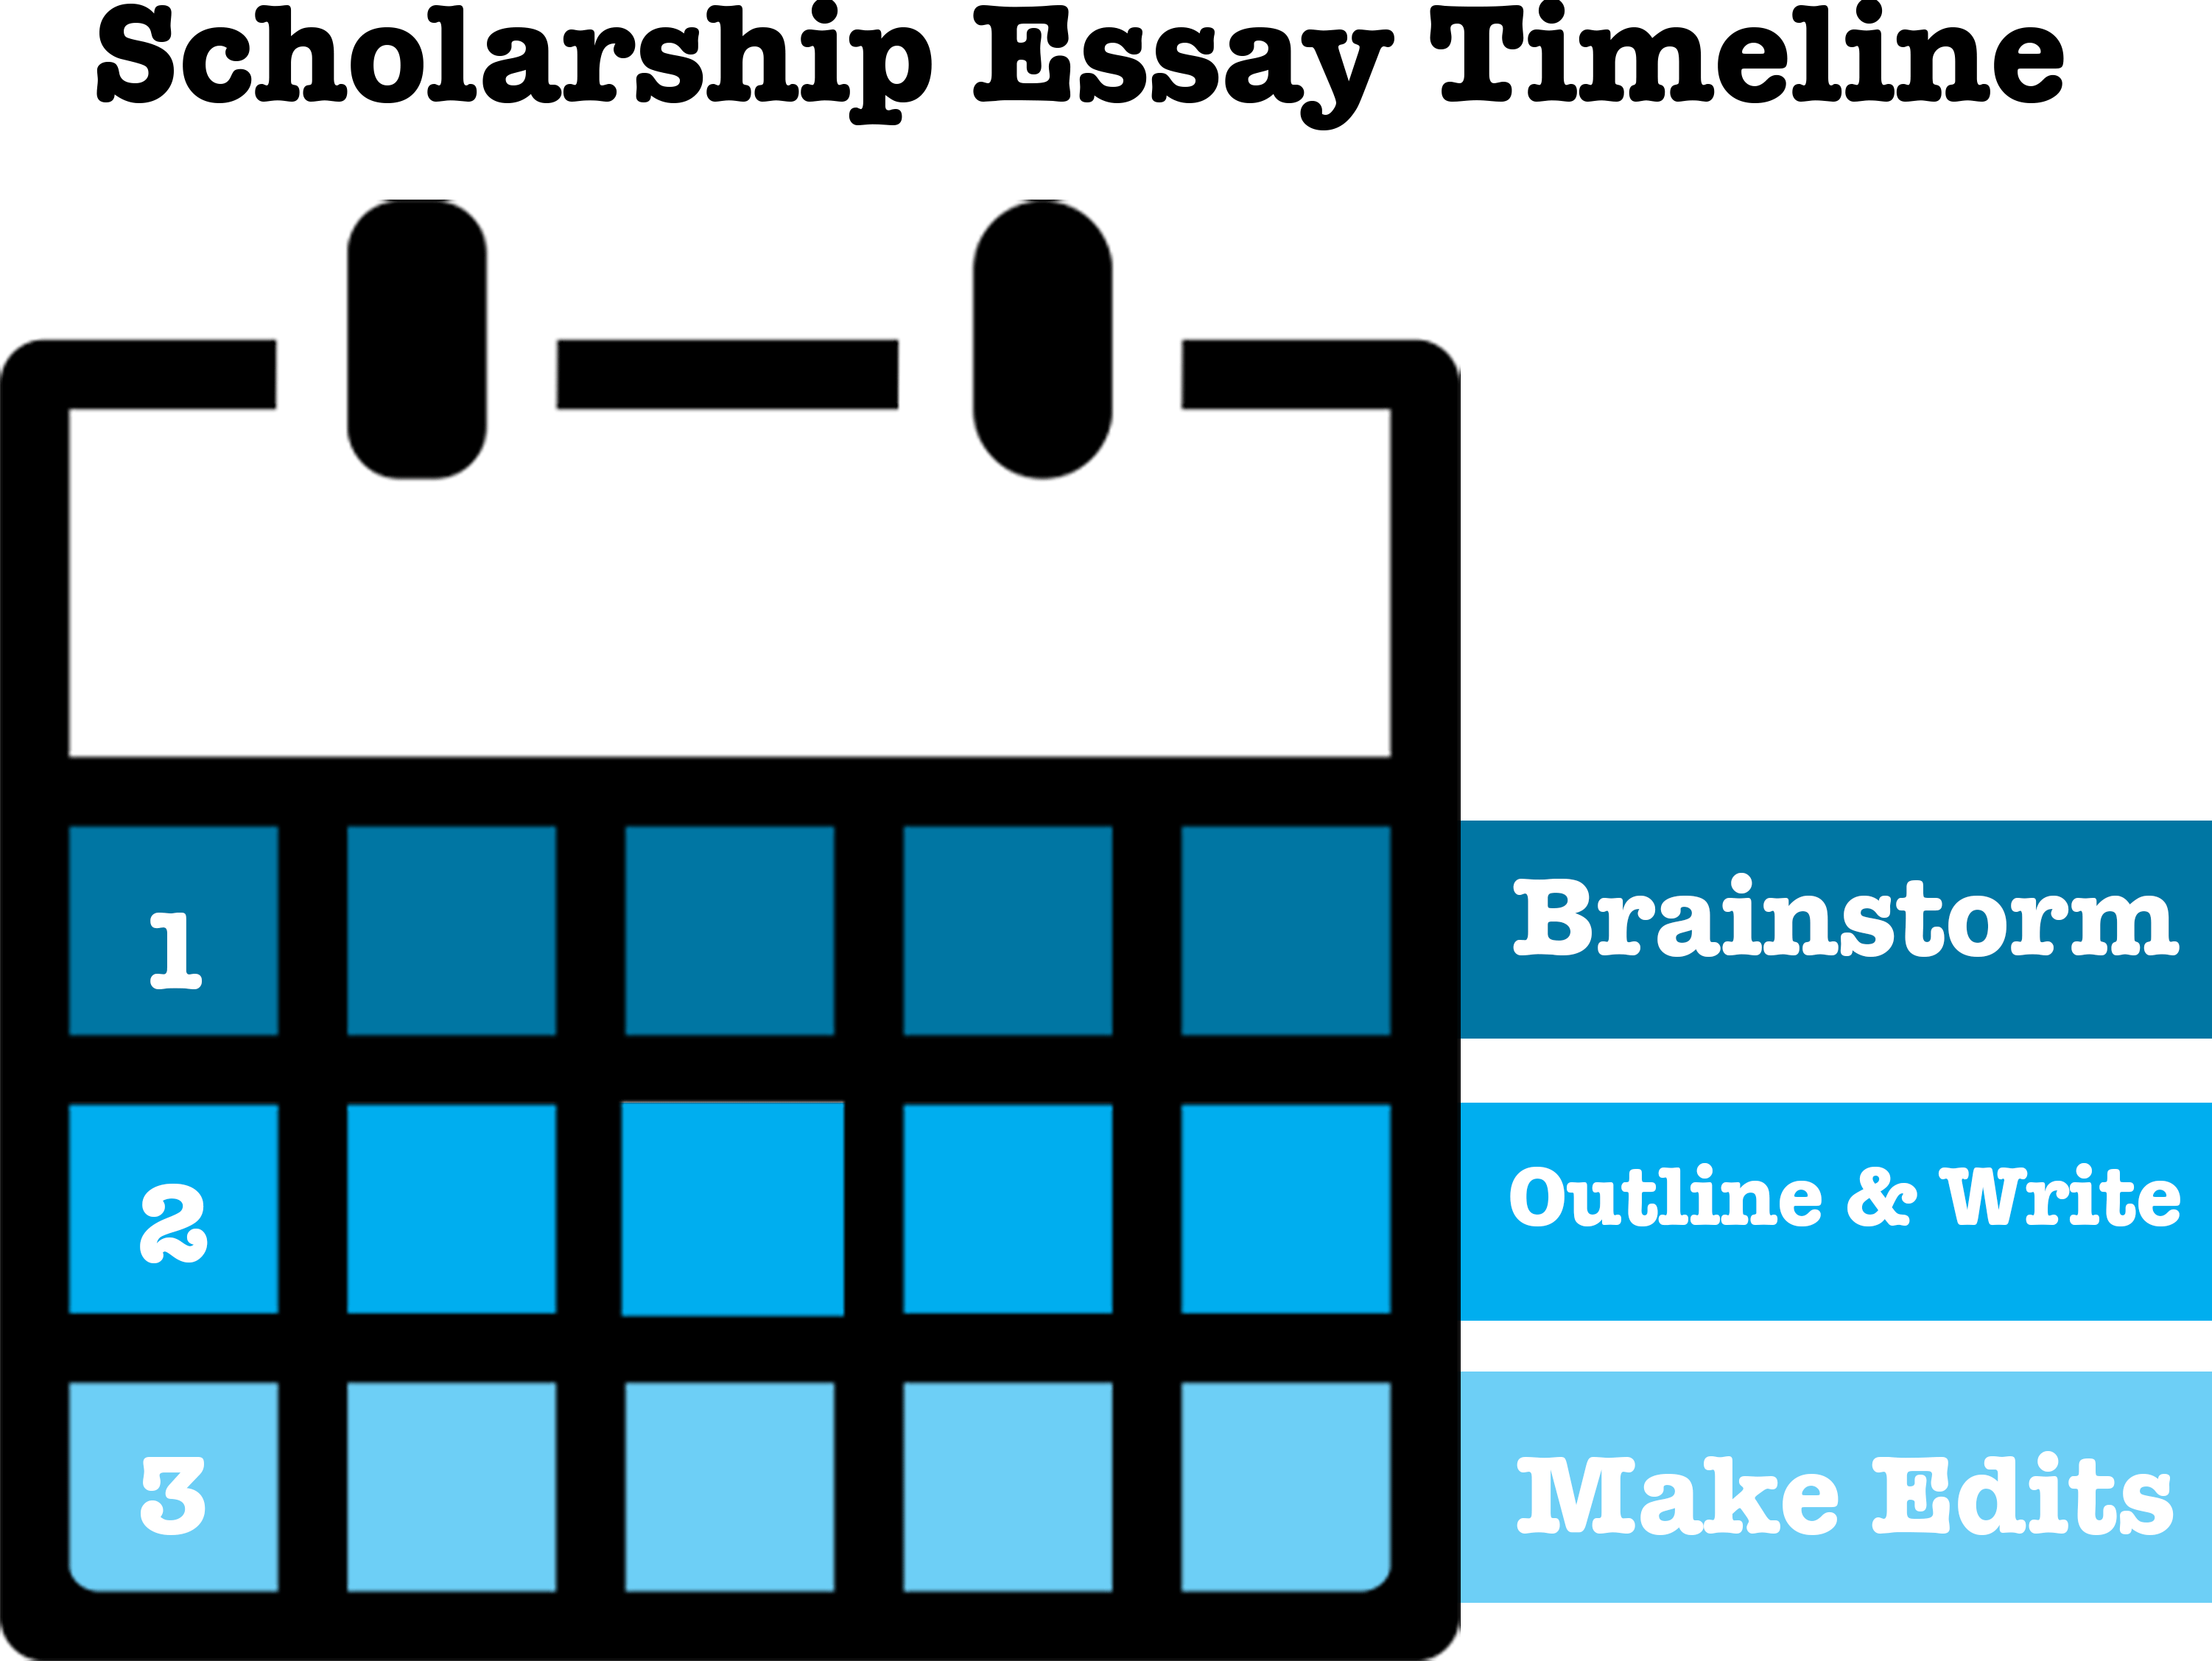 Need ideas for a scholarship essay?